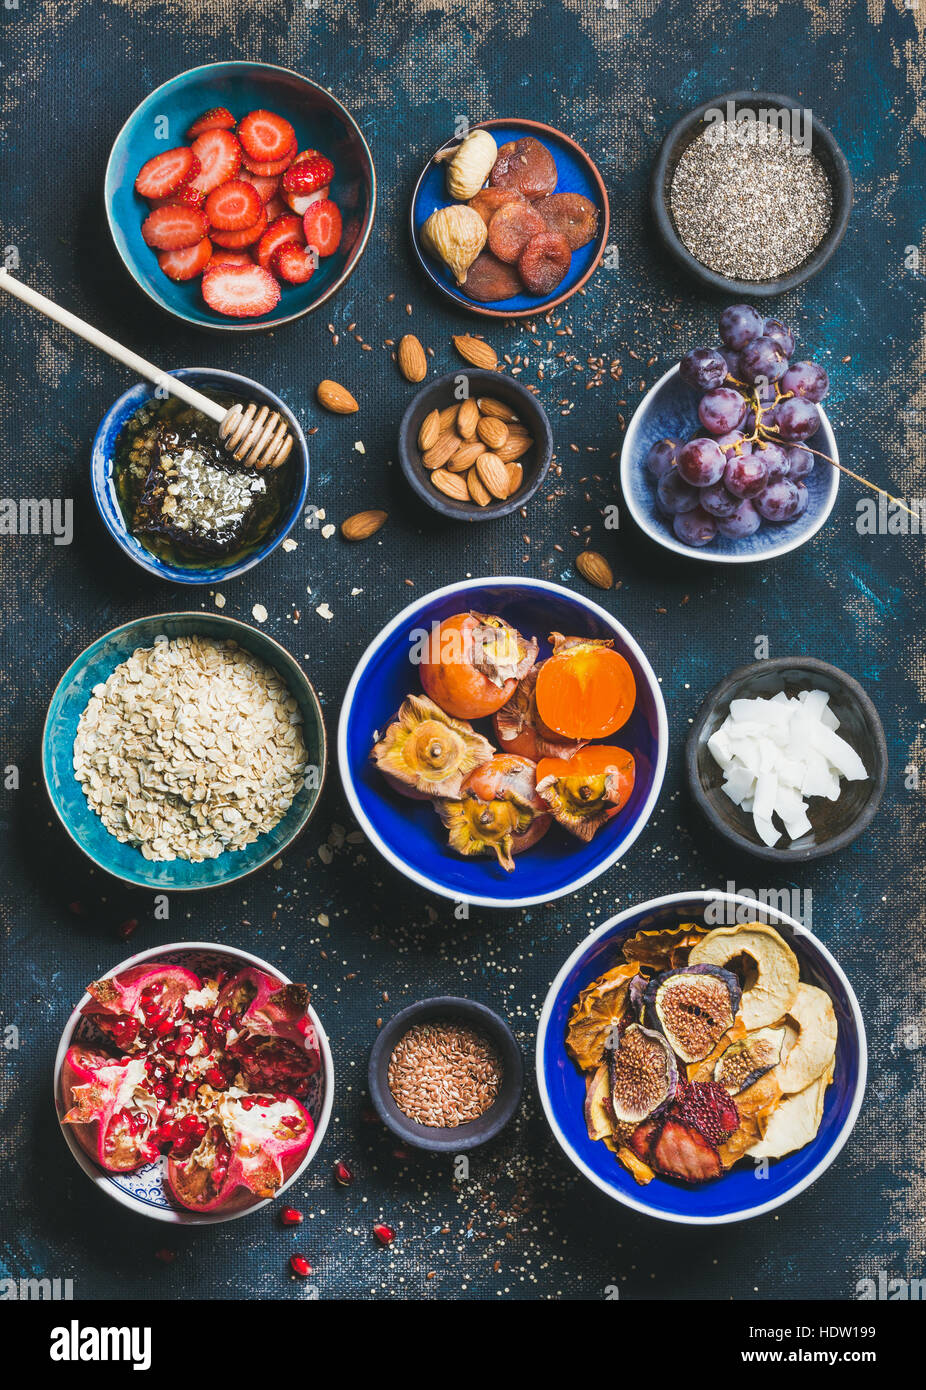 Fresh and dried fruit, chia seeds, oatmeal, nuts, honey - Stock Image